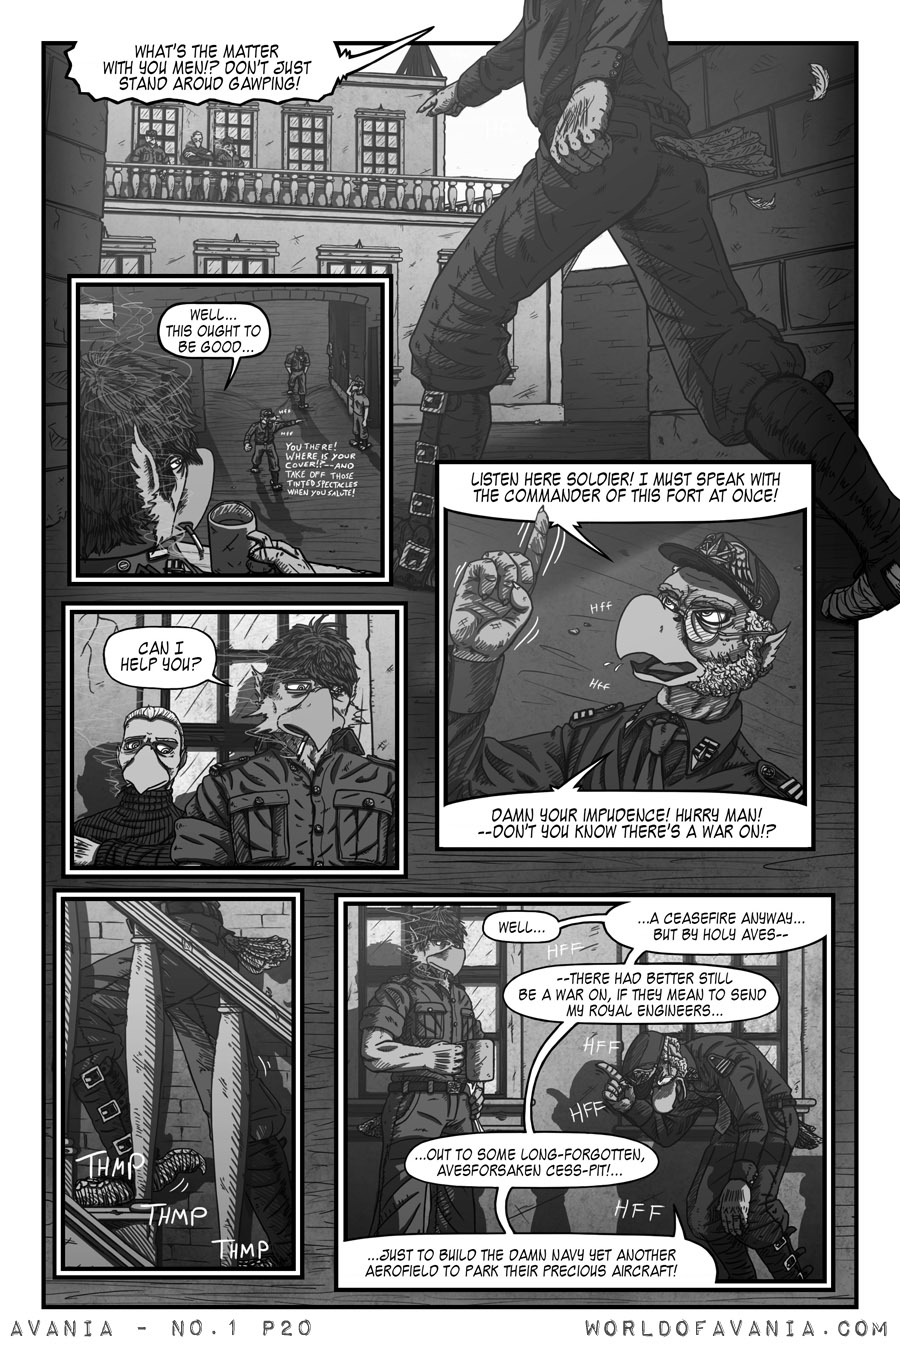 Avania Comic - Issue No.1, Page 20